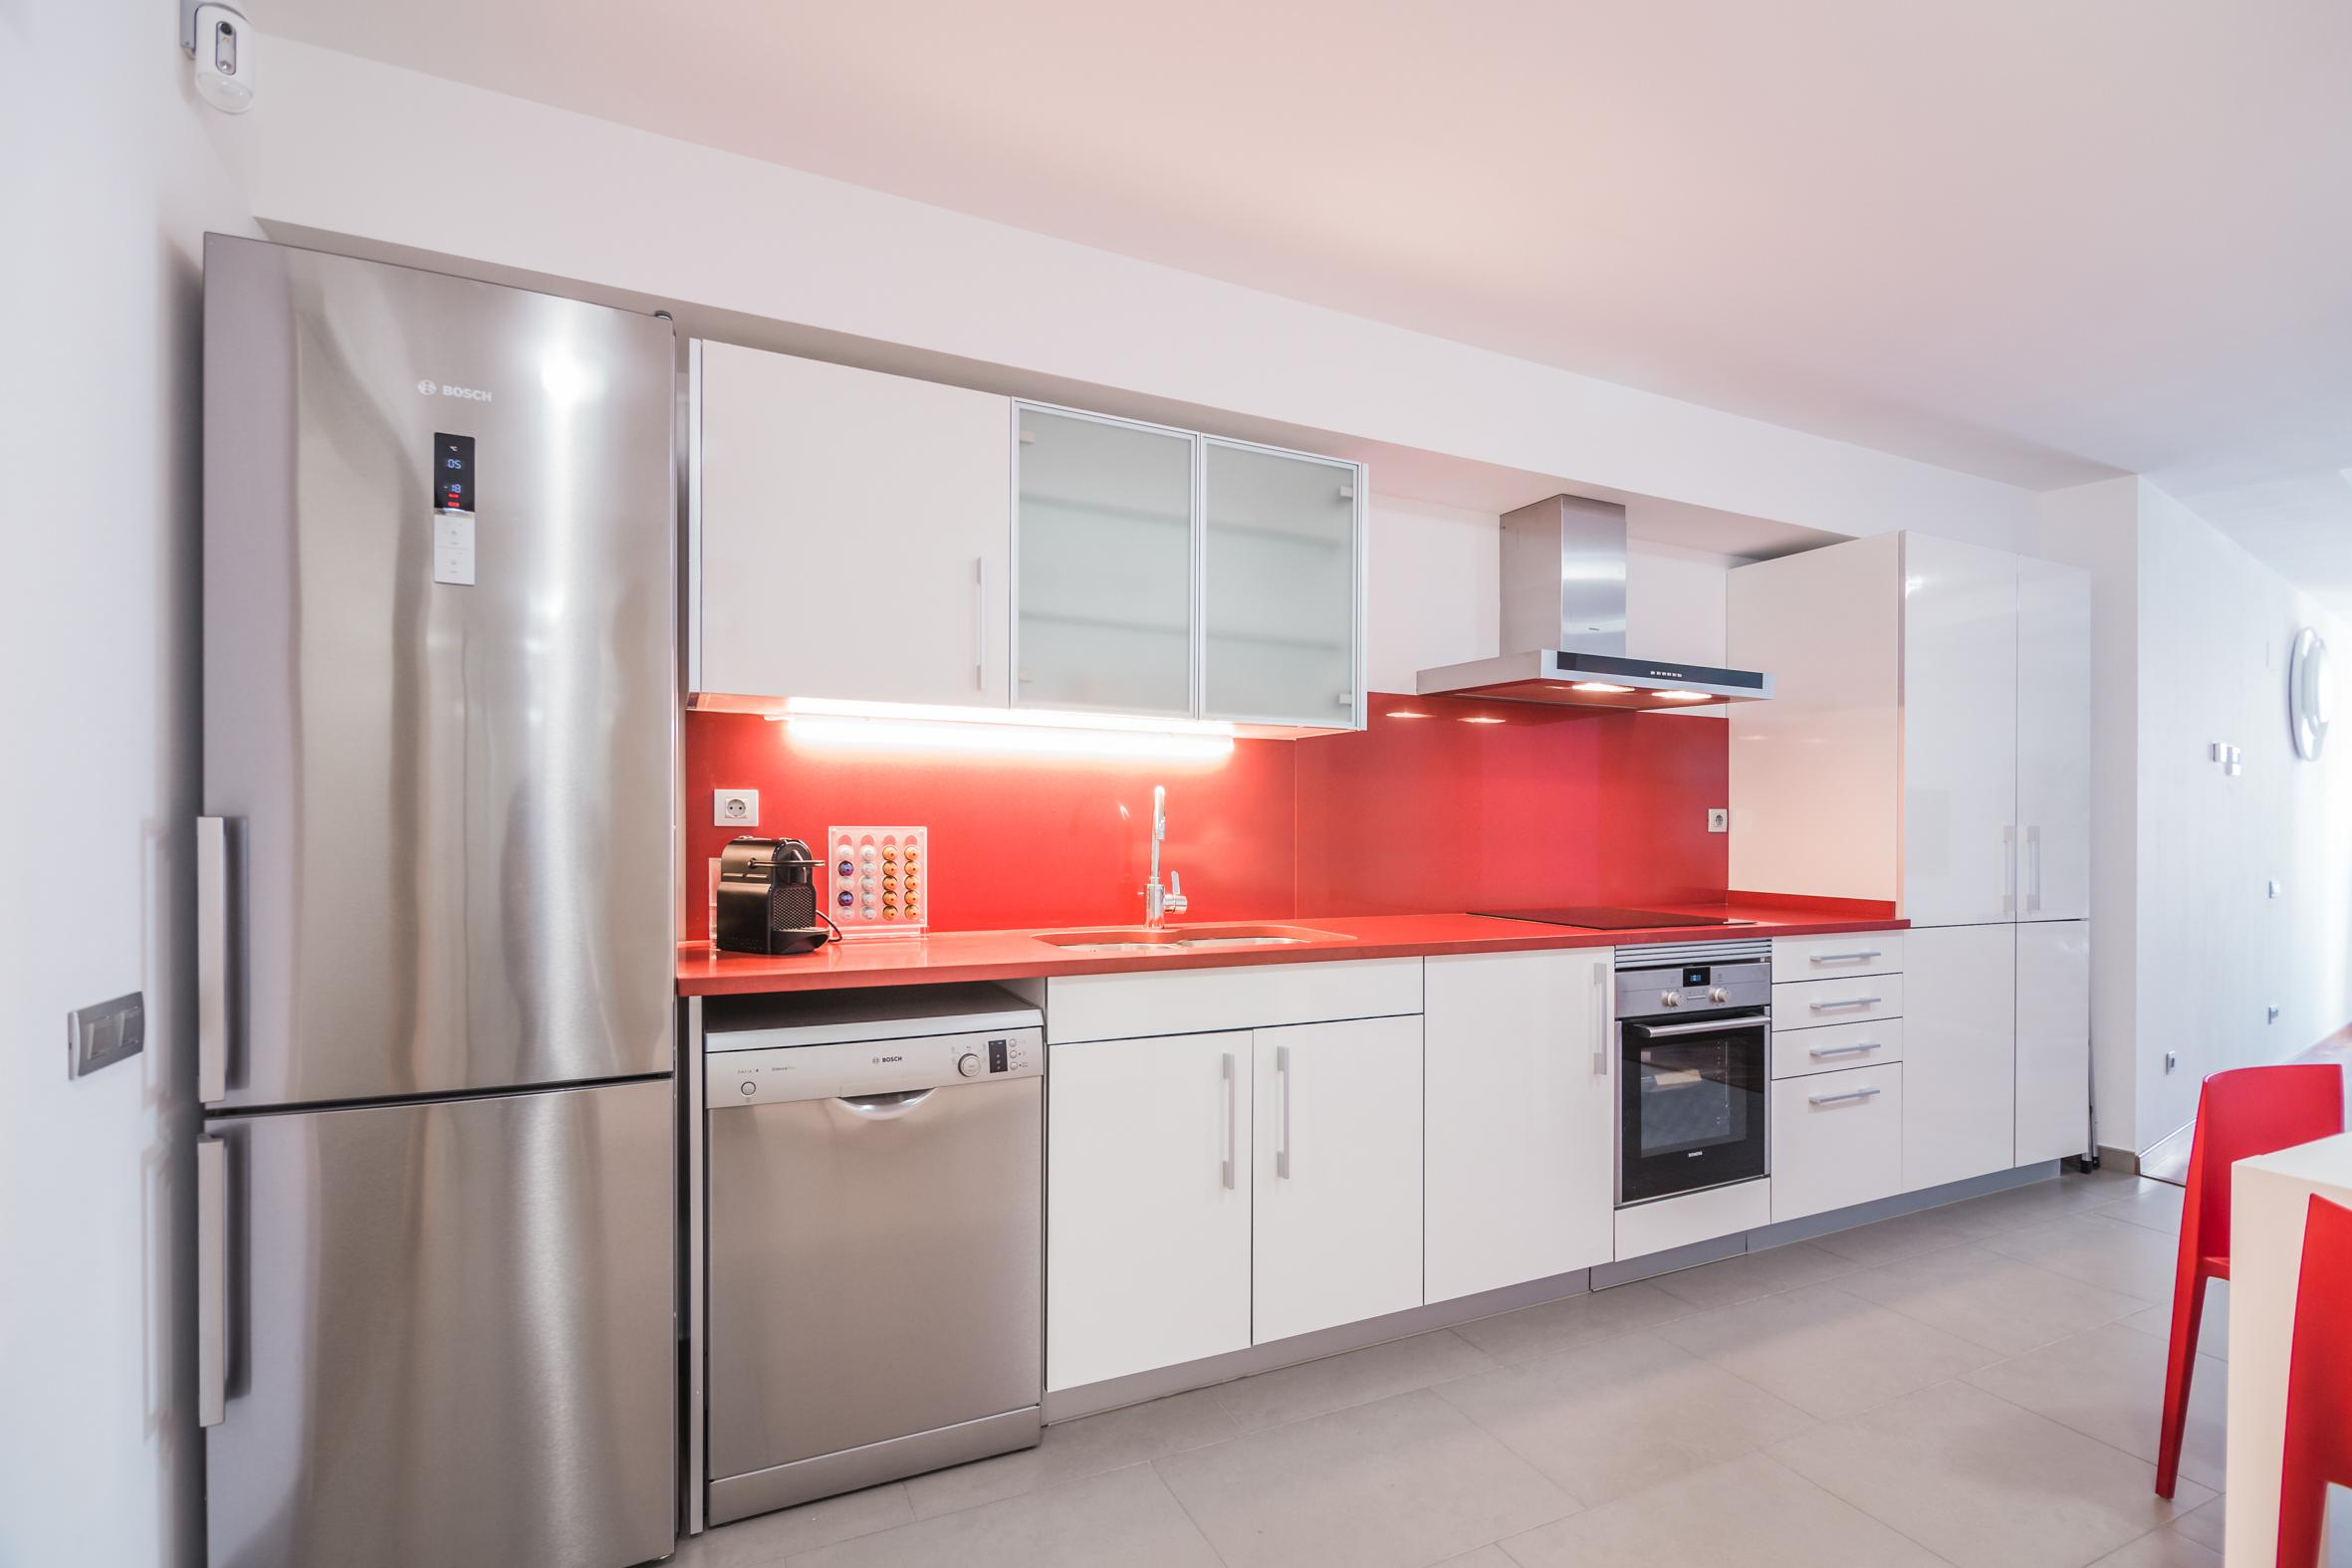 194056 Flat for sale in Ciutat Vella, Barri Gótic 19